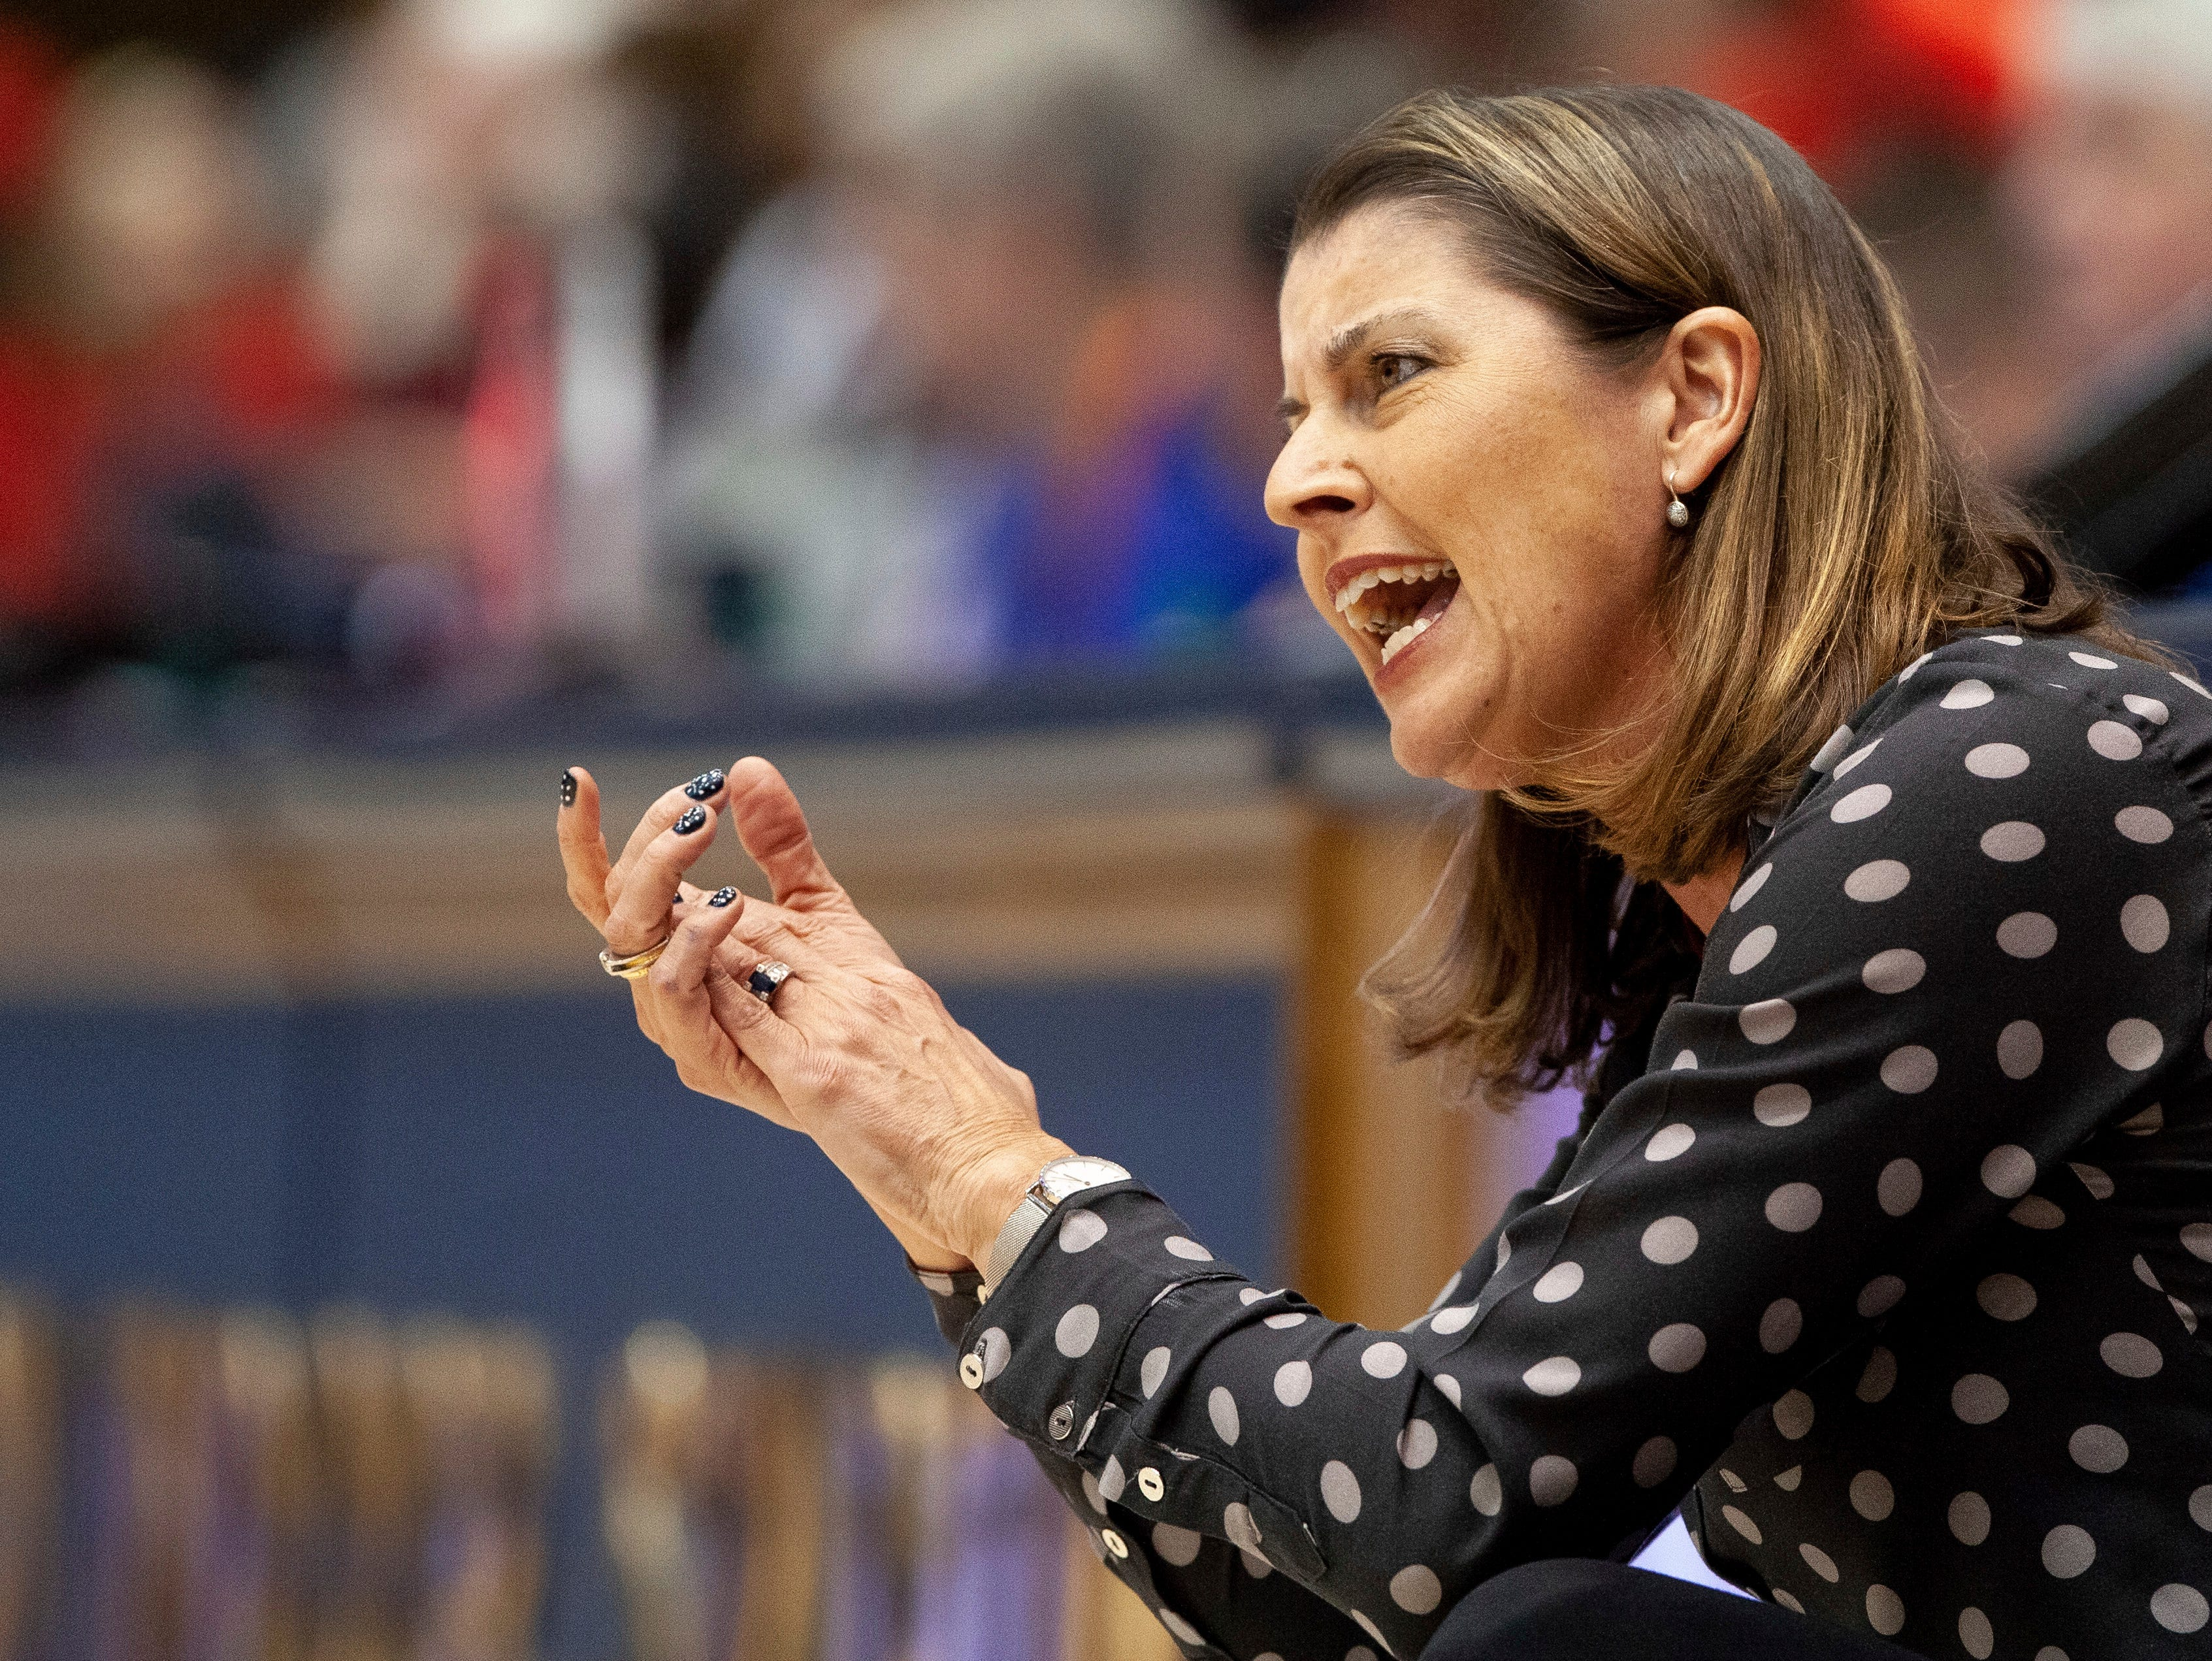 Duke head coach Joanne McCallie encourages her team during the first half of an NCAA college basketball game against Louisville in Durham, N.C., Sunday, Jan. 6, 2019.